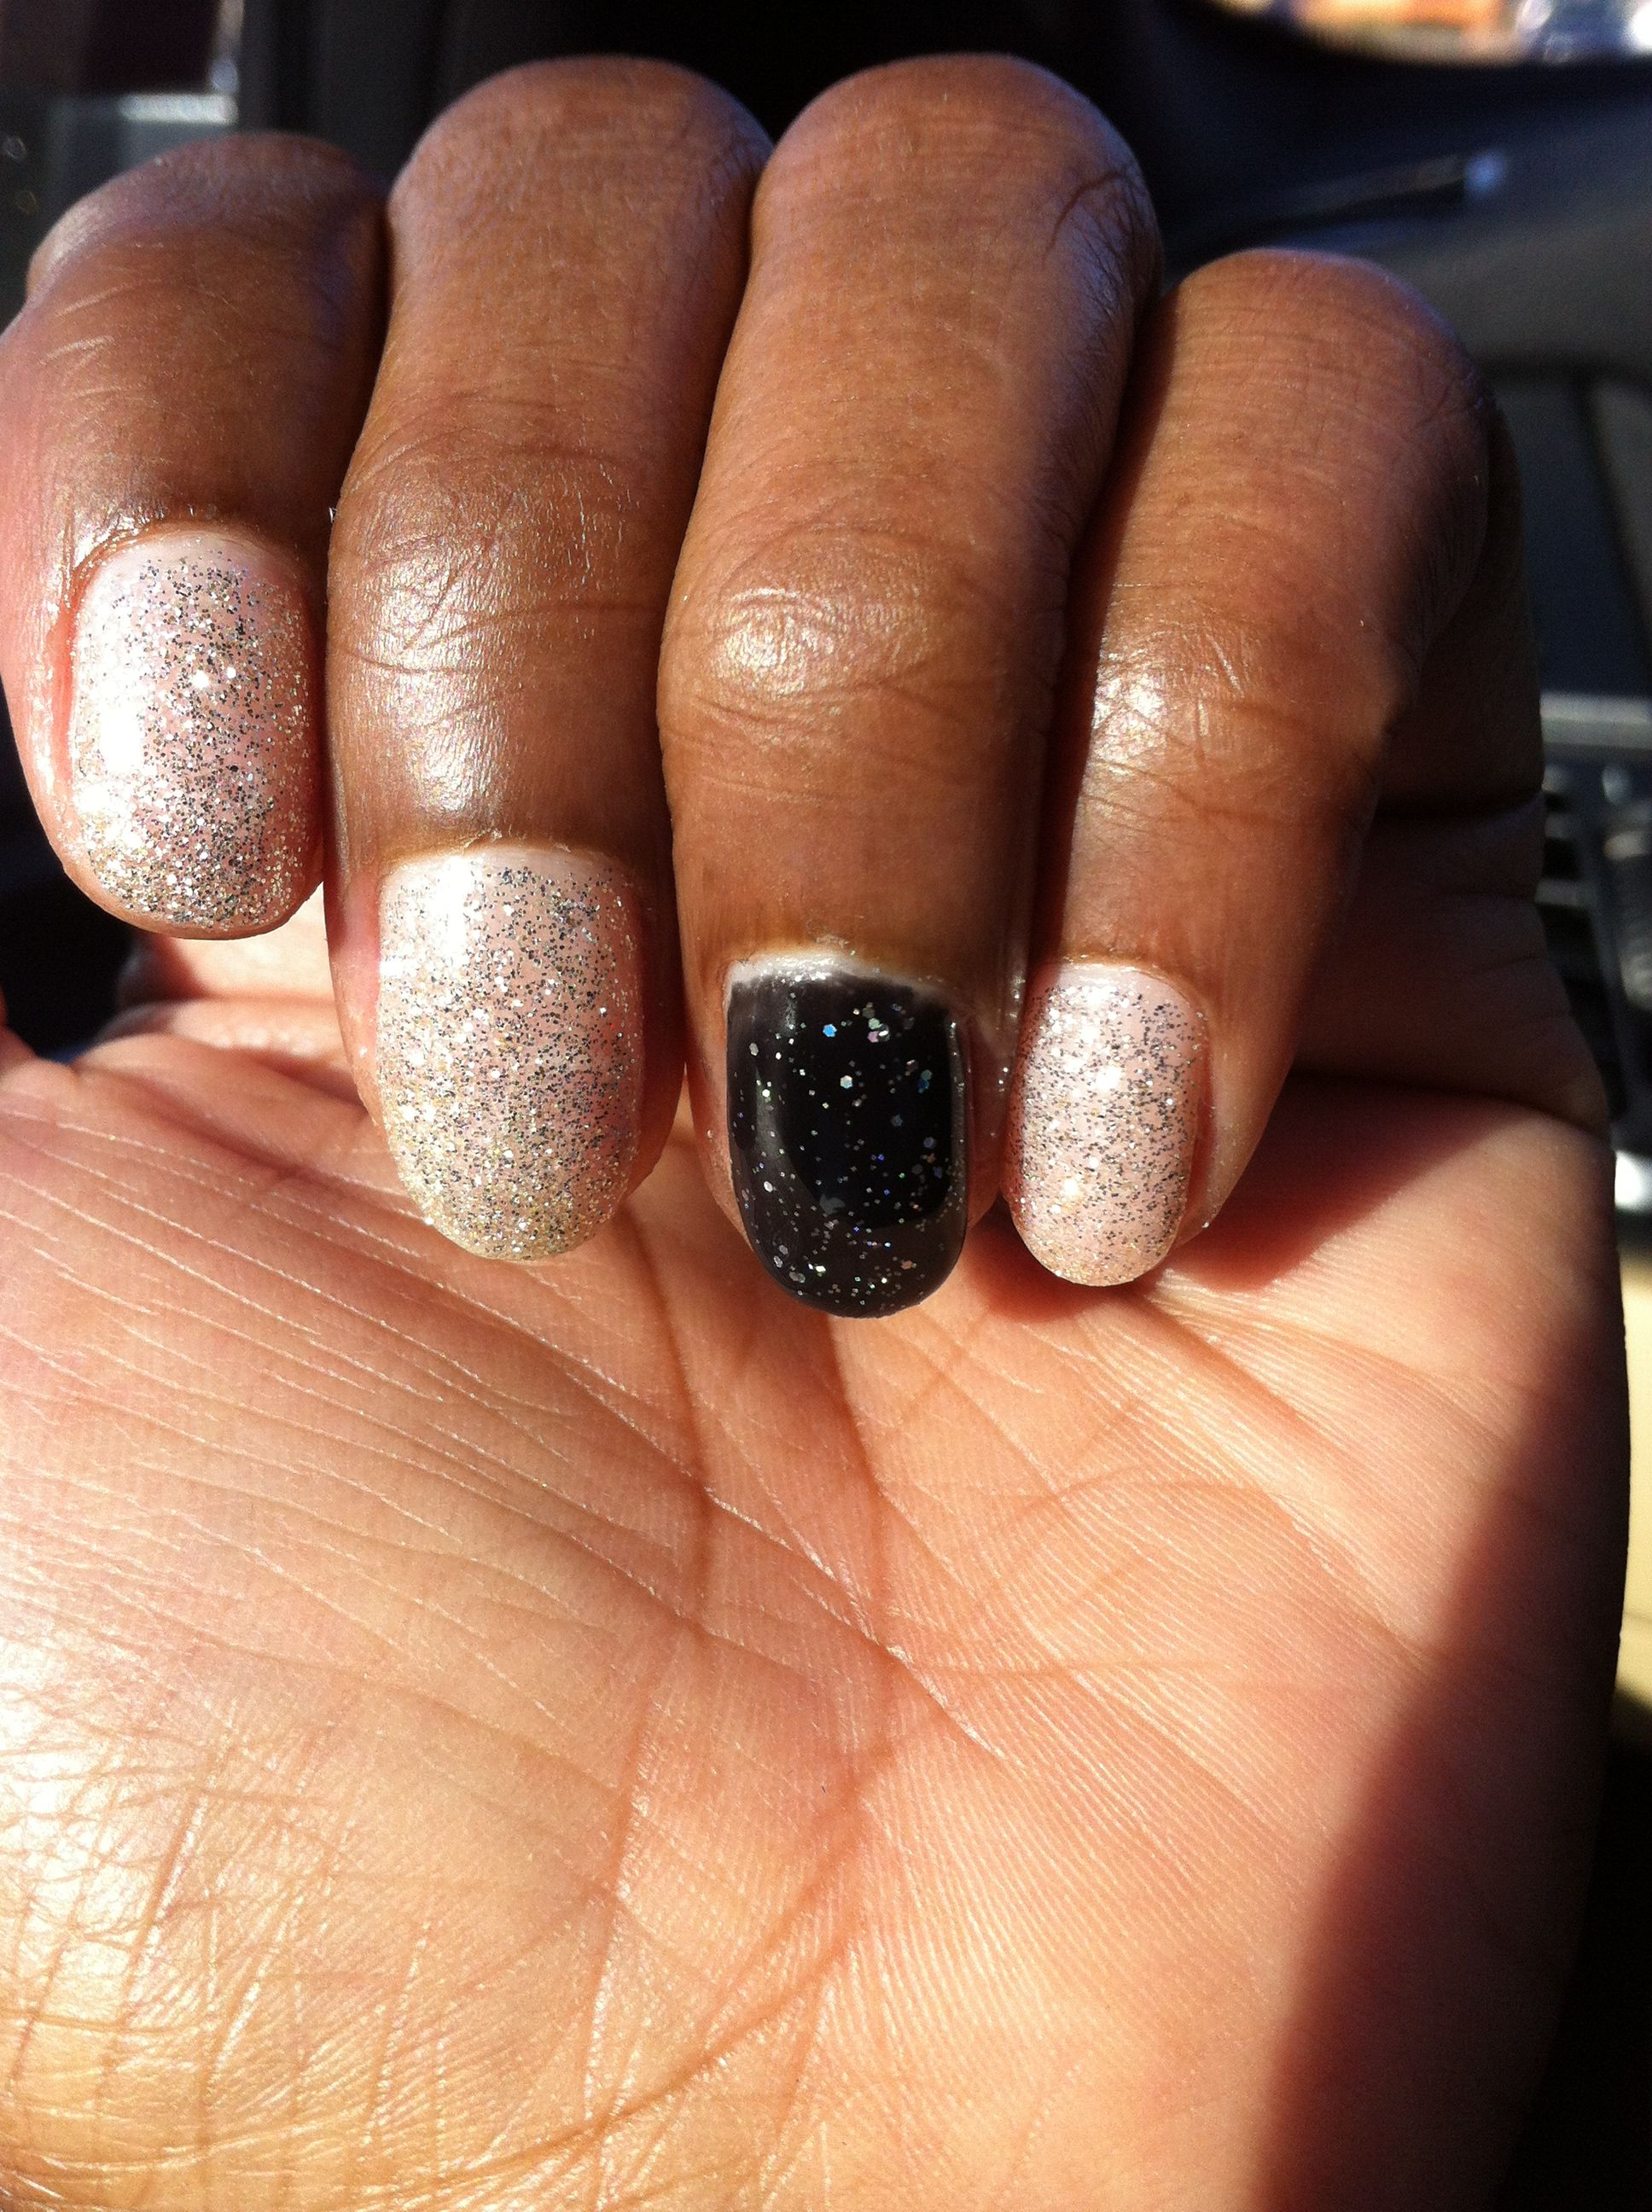 New Year party gel nails color | Nails | Pinterest